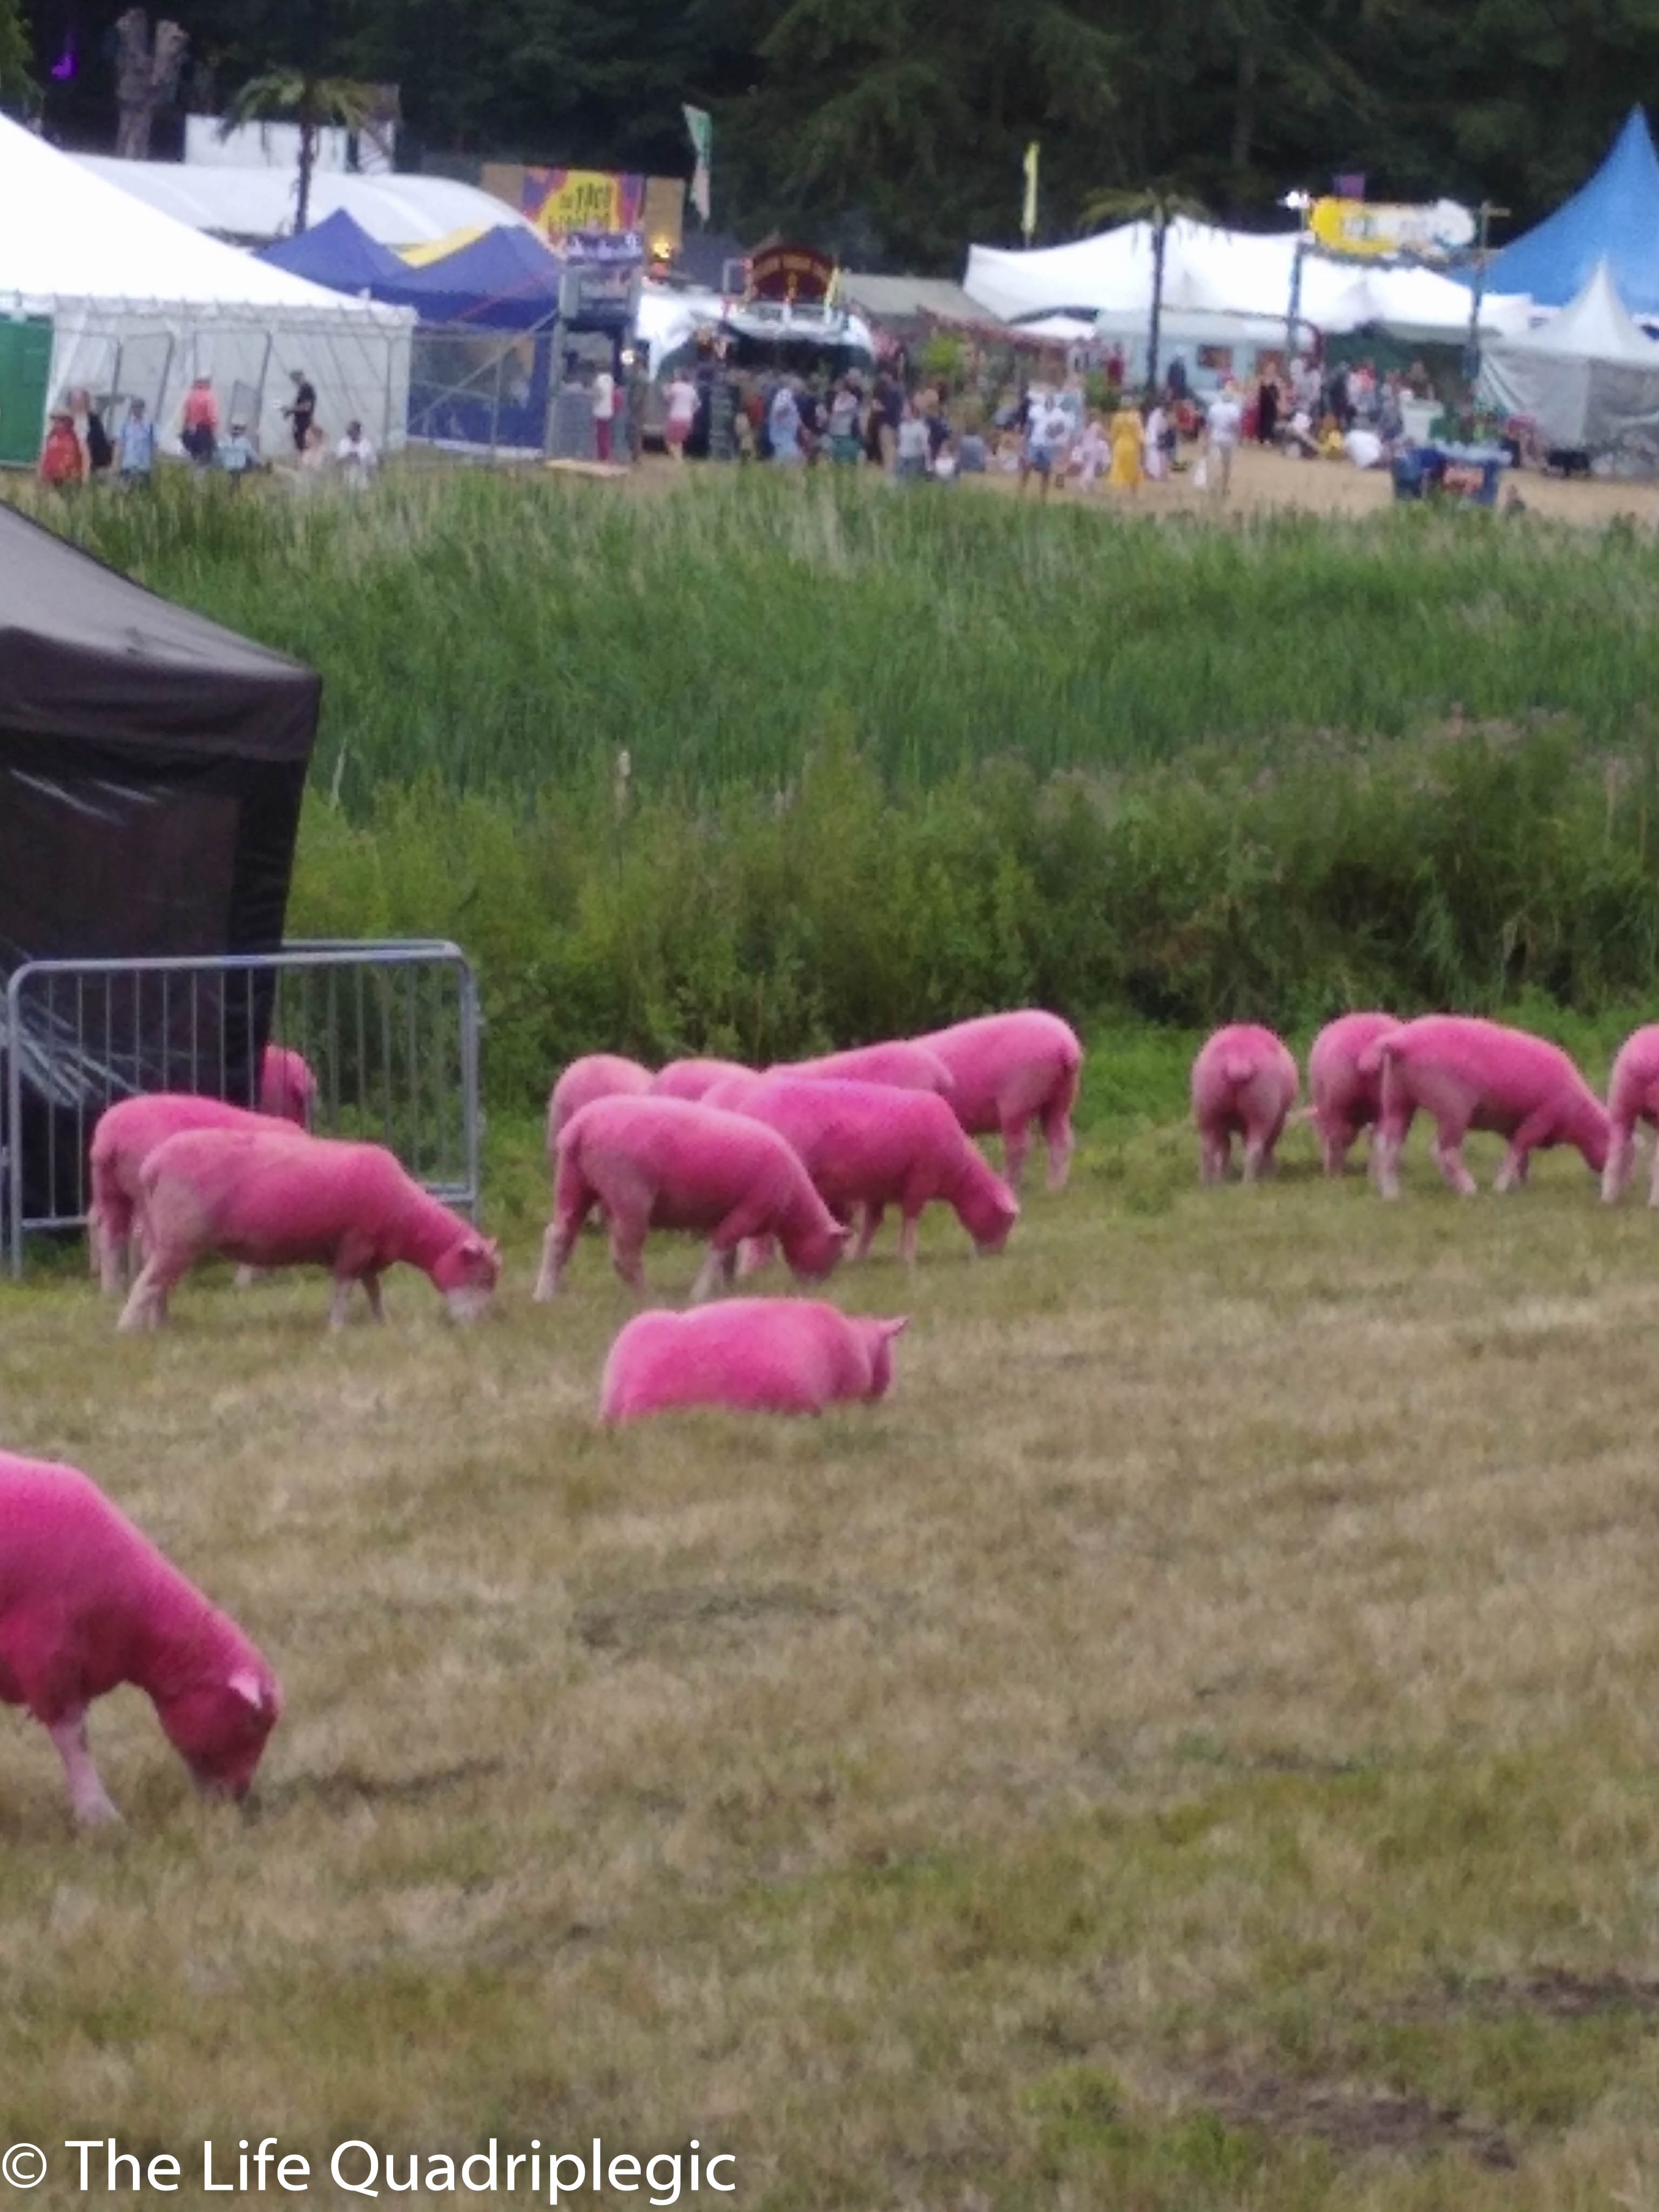 Pink sheep are eating grass in the foreground, with a number of tents in the background